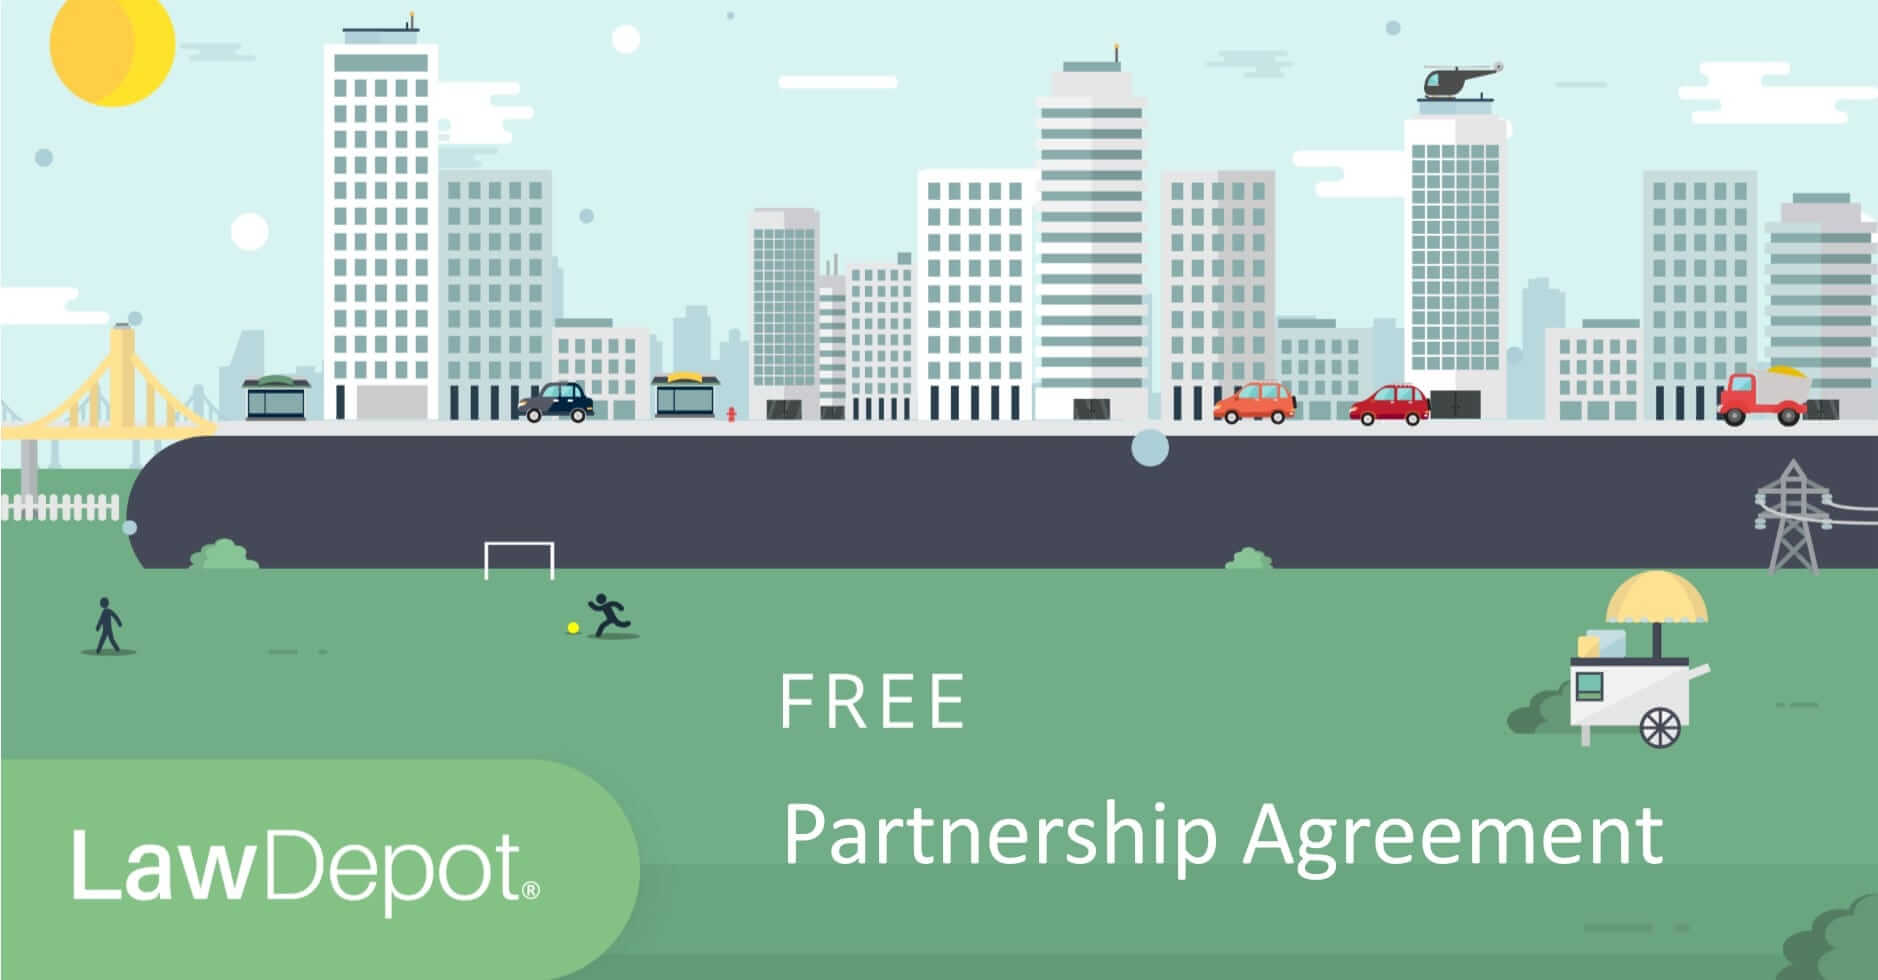 Partnership Agreement Template Us Lawdepot